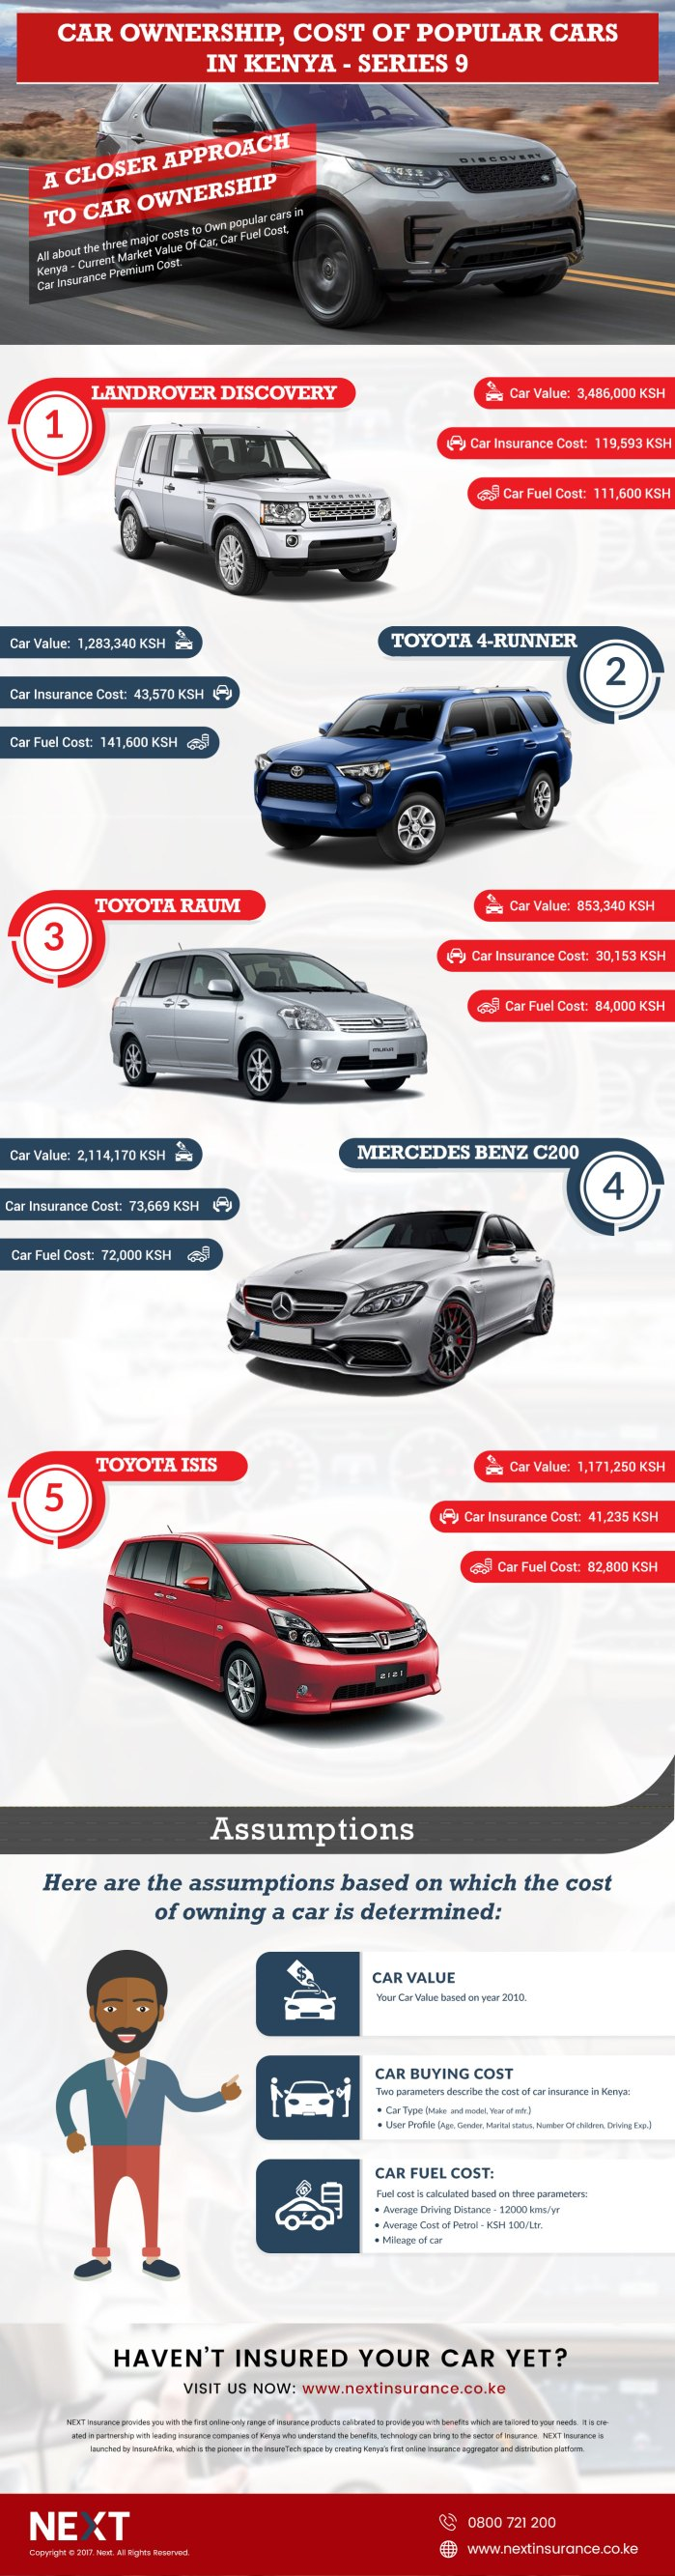 Car Ownership Cost, Top 5 Cars in Kenya Infographic – Series 9